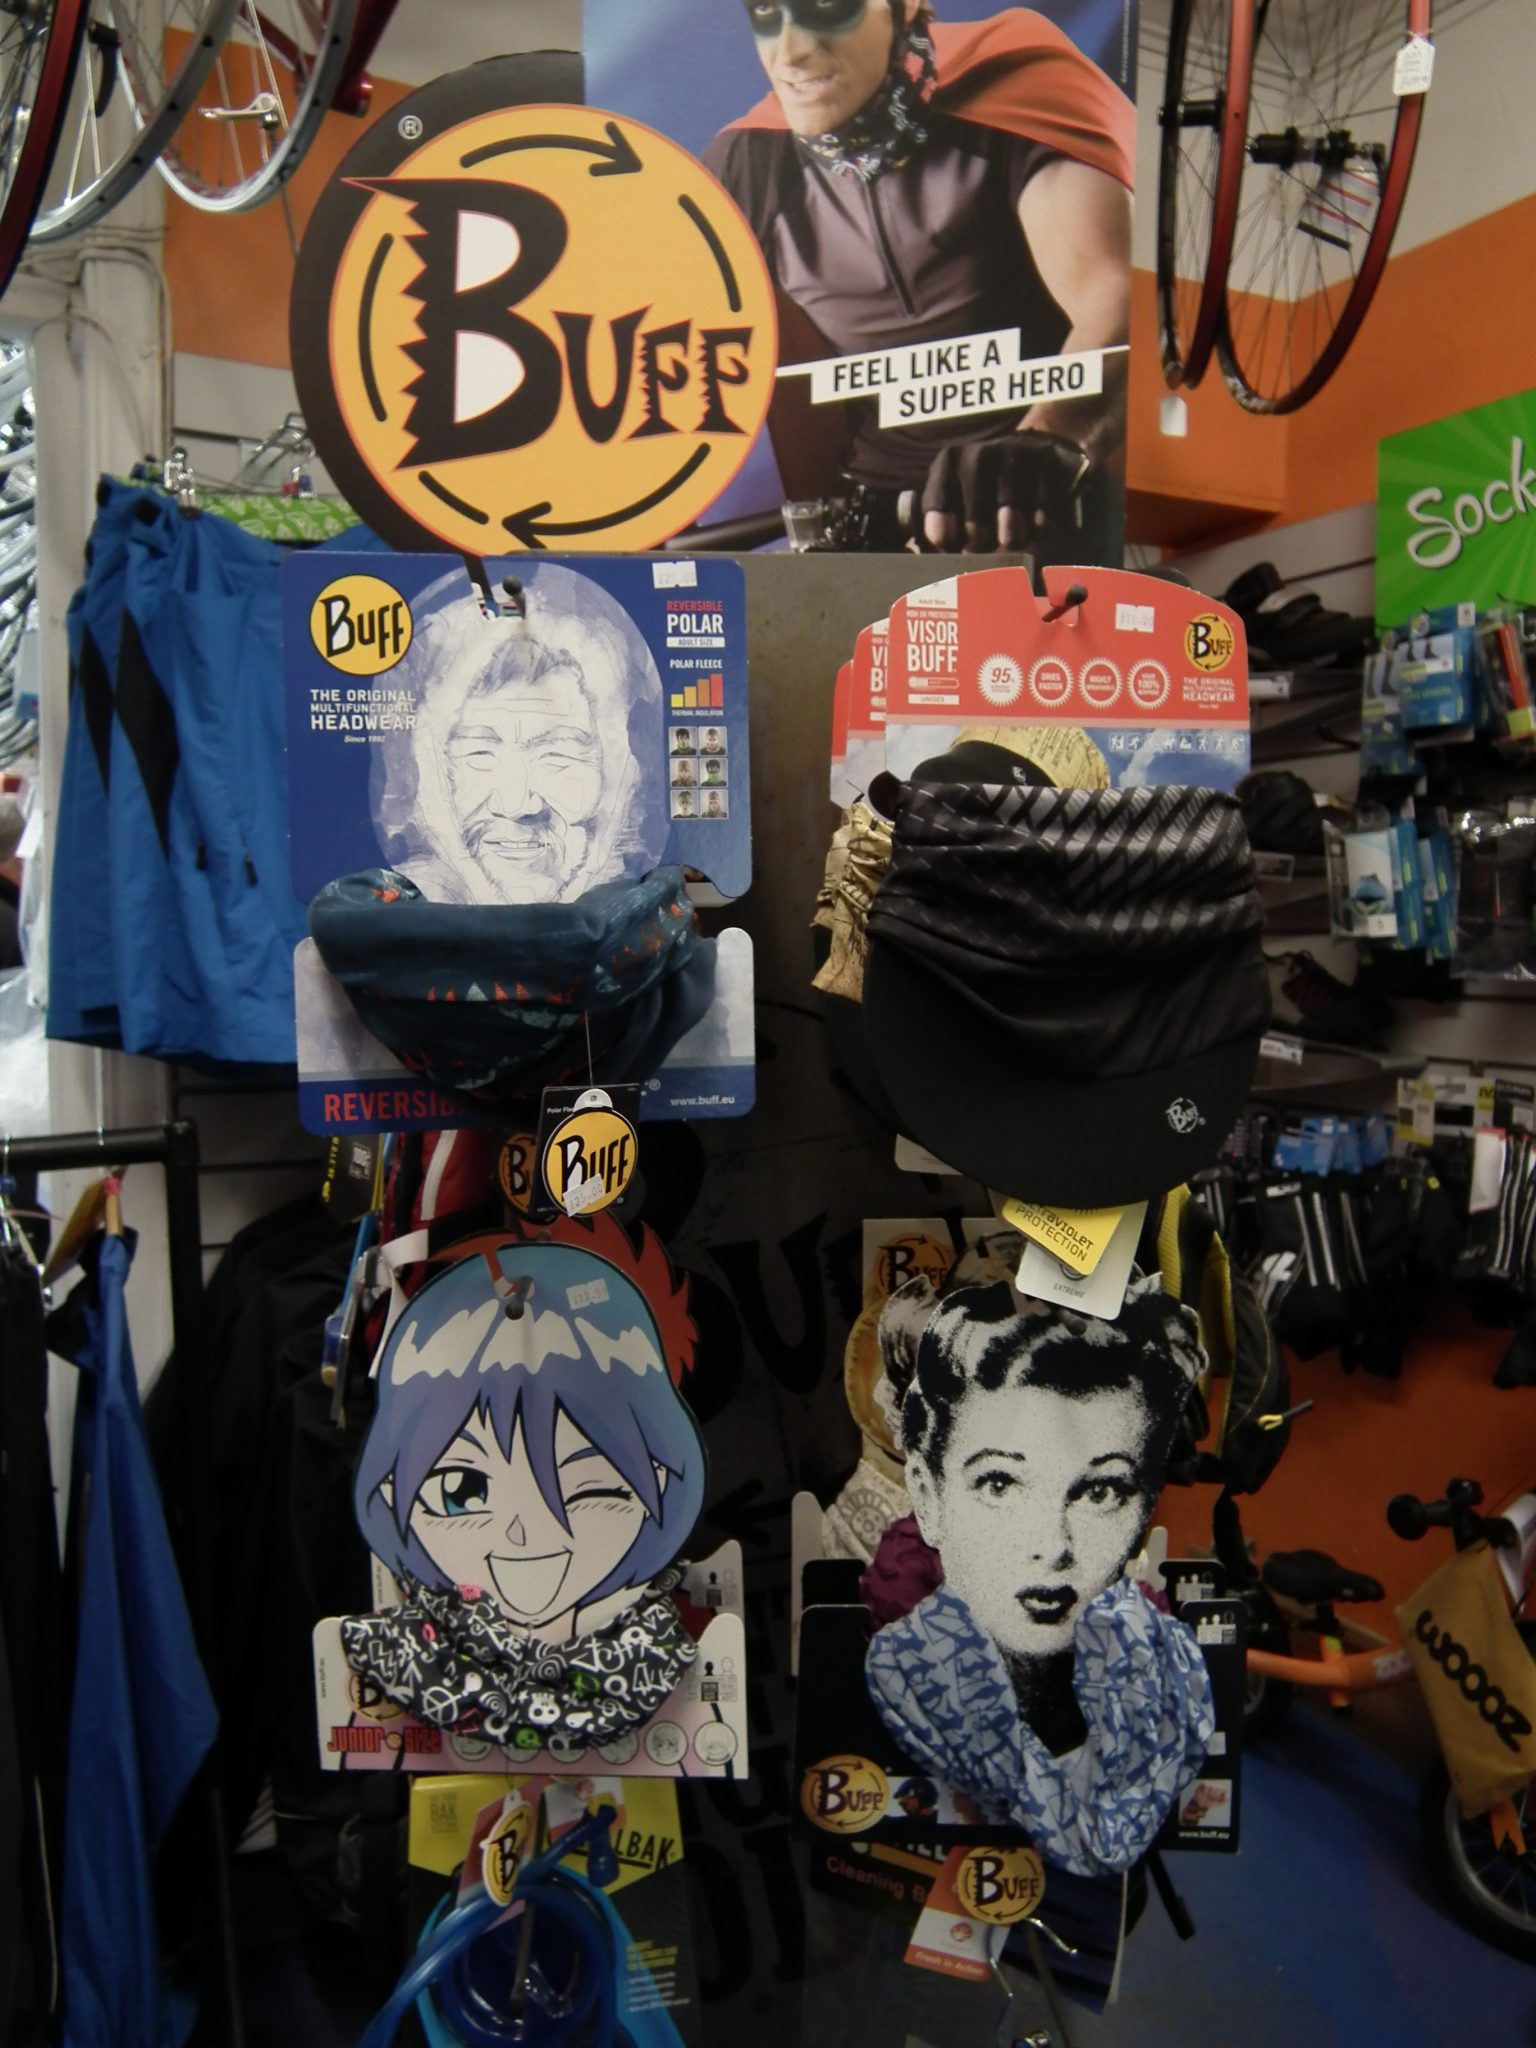 BUFF – the multi functional headwear